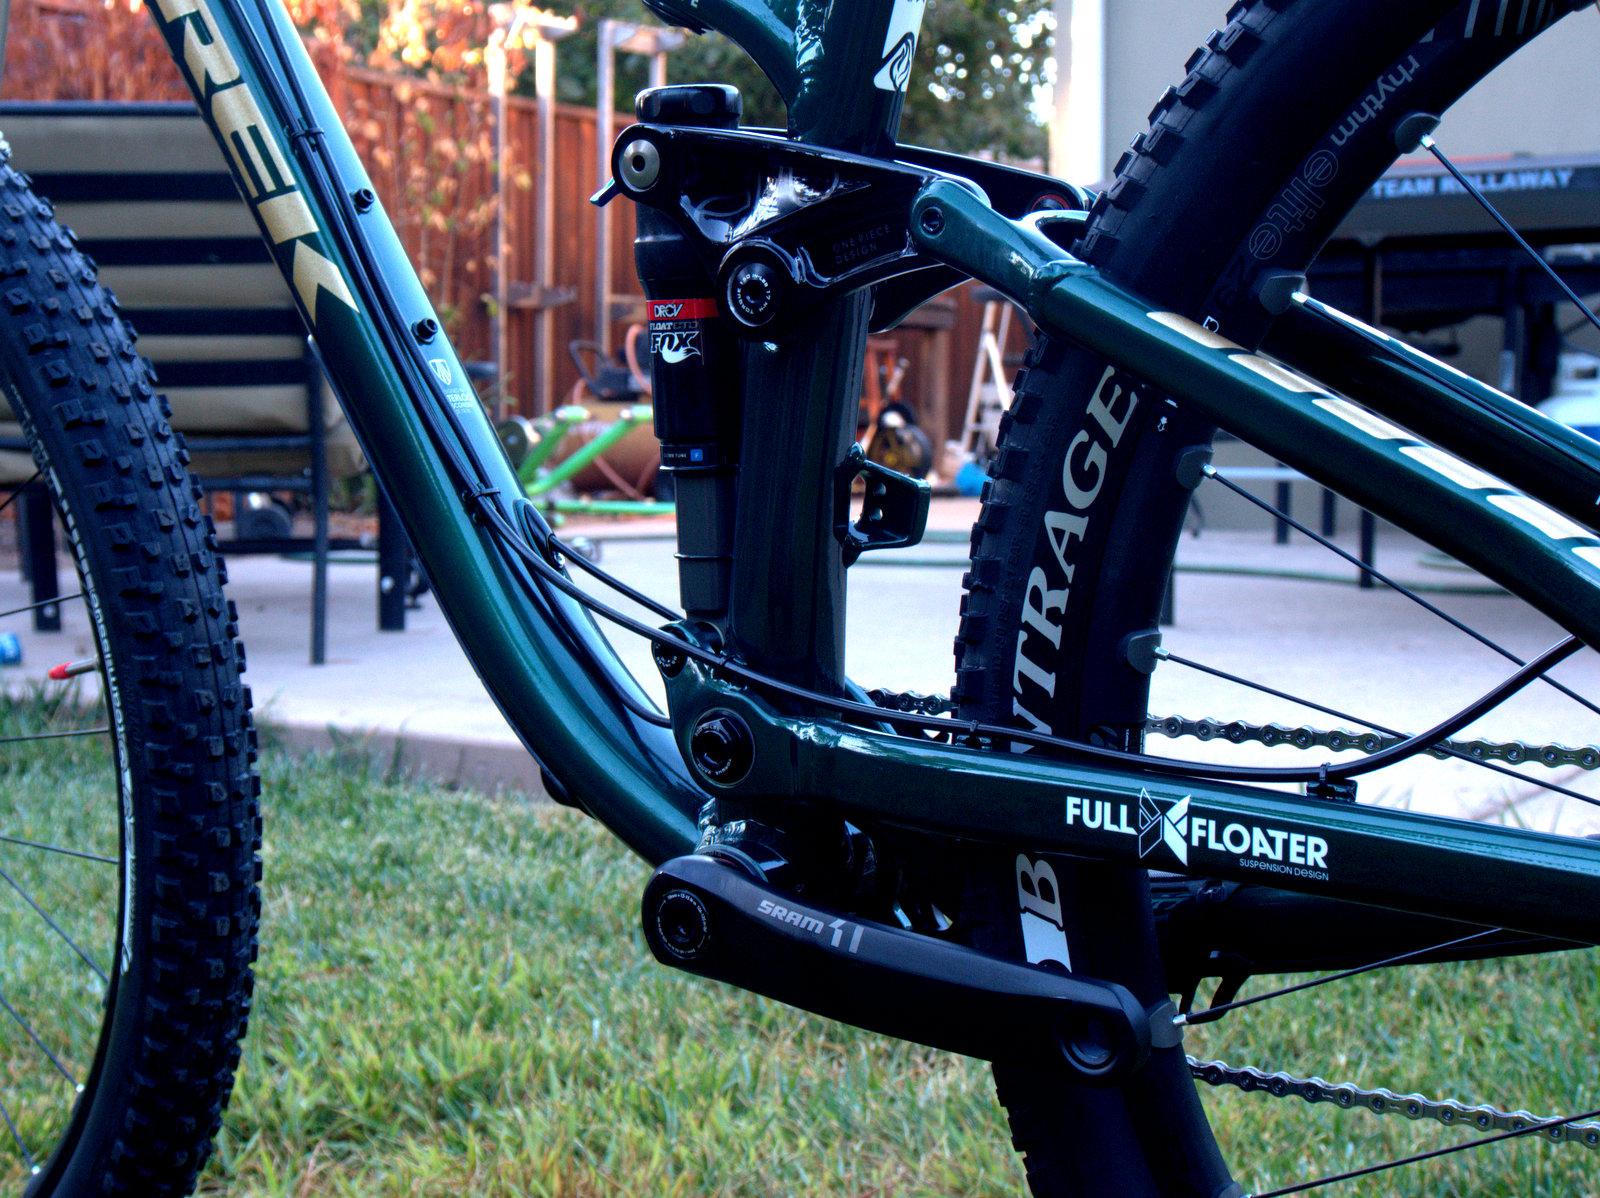 Trek Fuel 29 Project One